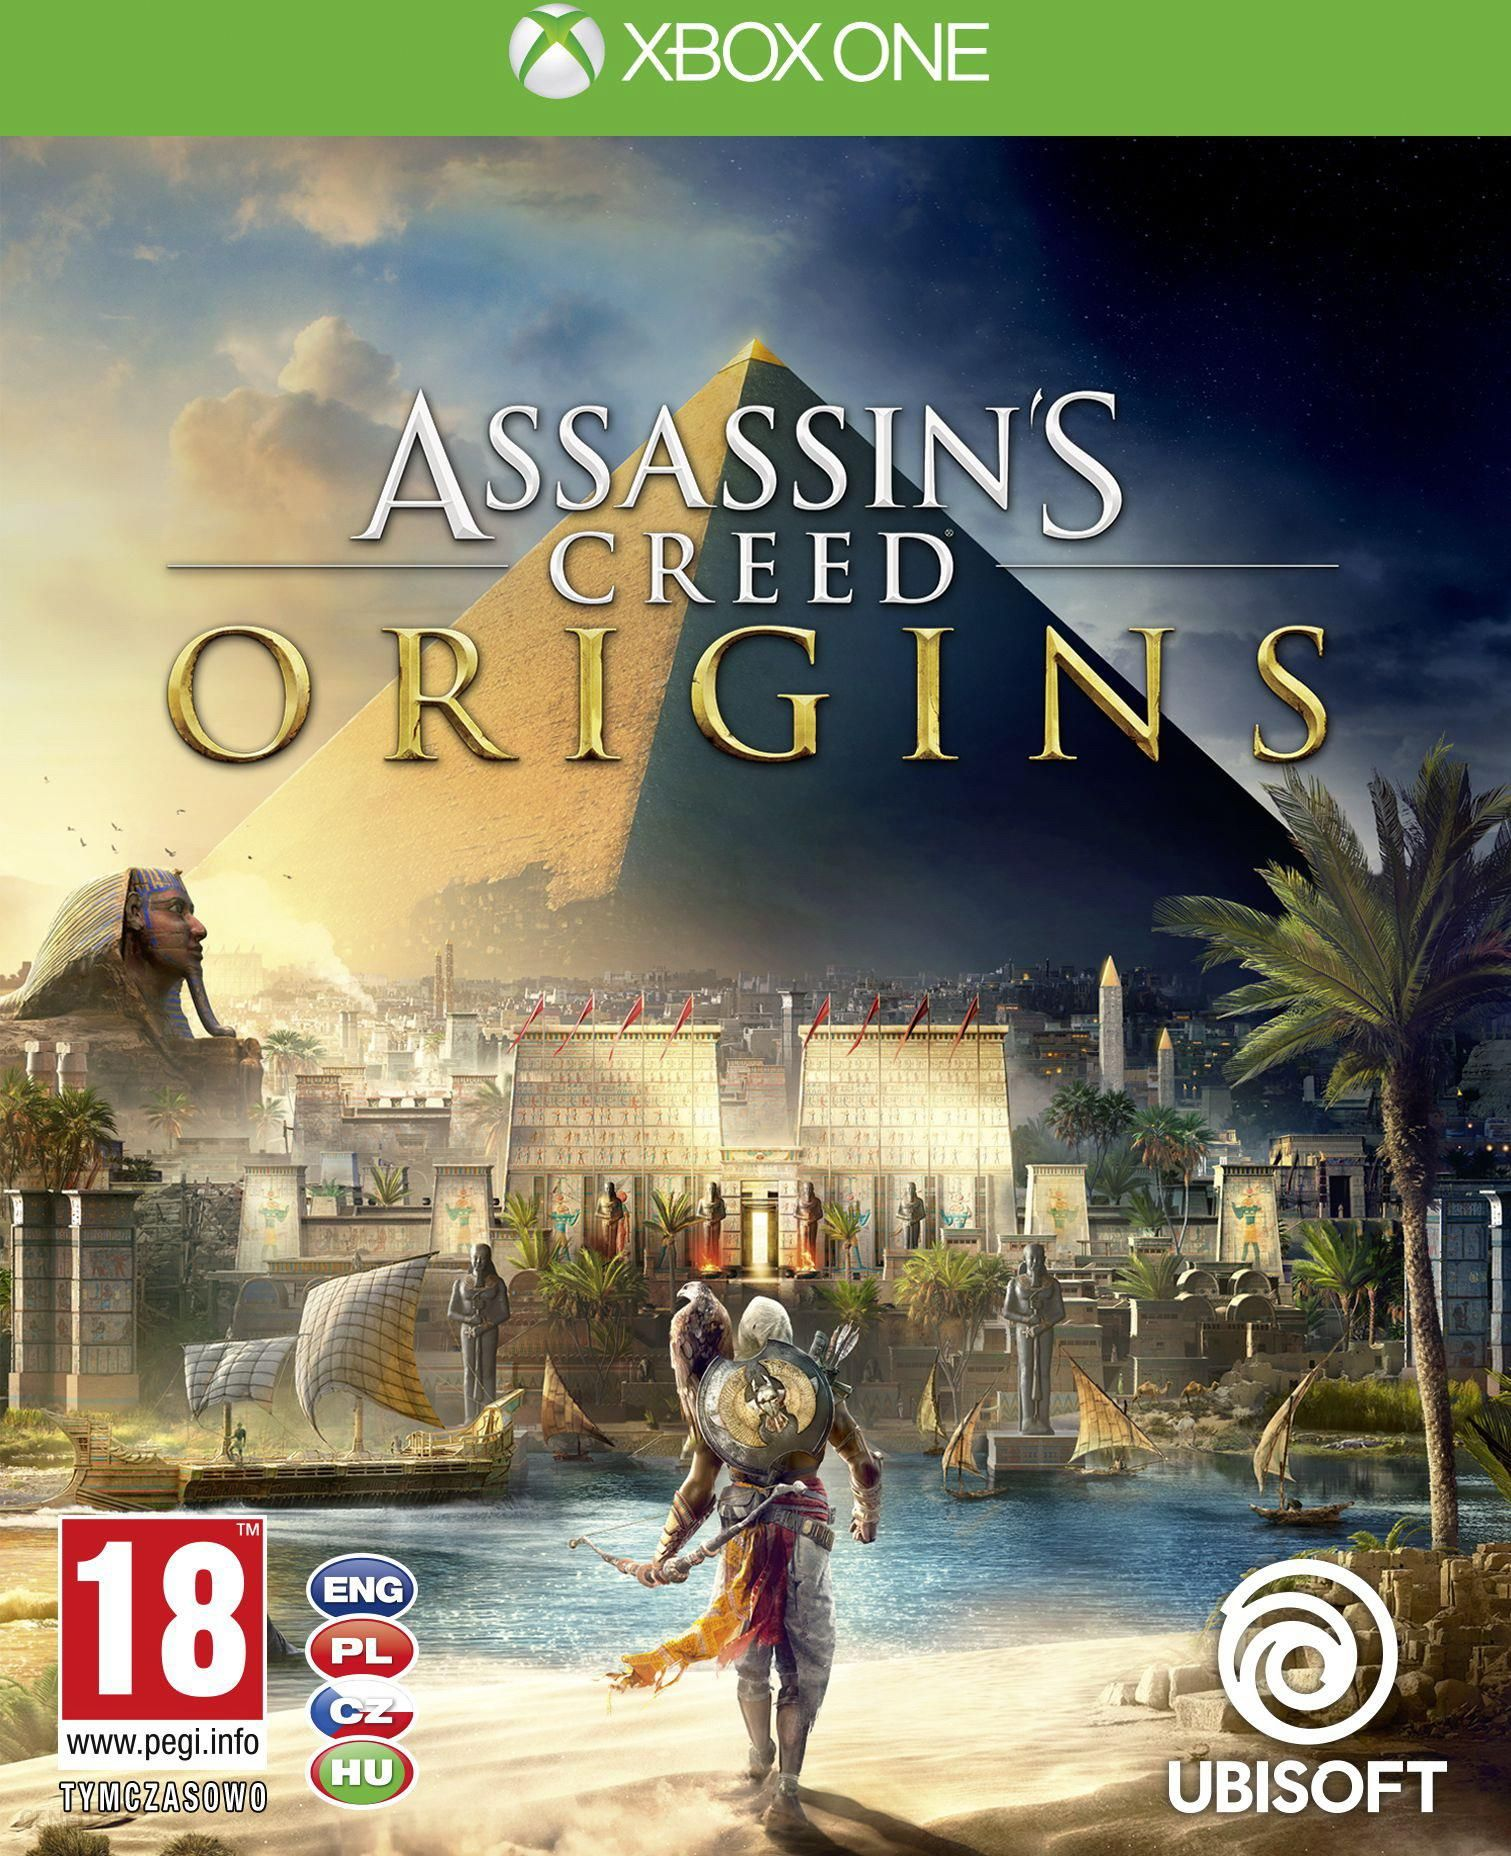 Assassins Creed Origins Gra Xbox One Od 99 90 Zł Ceny